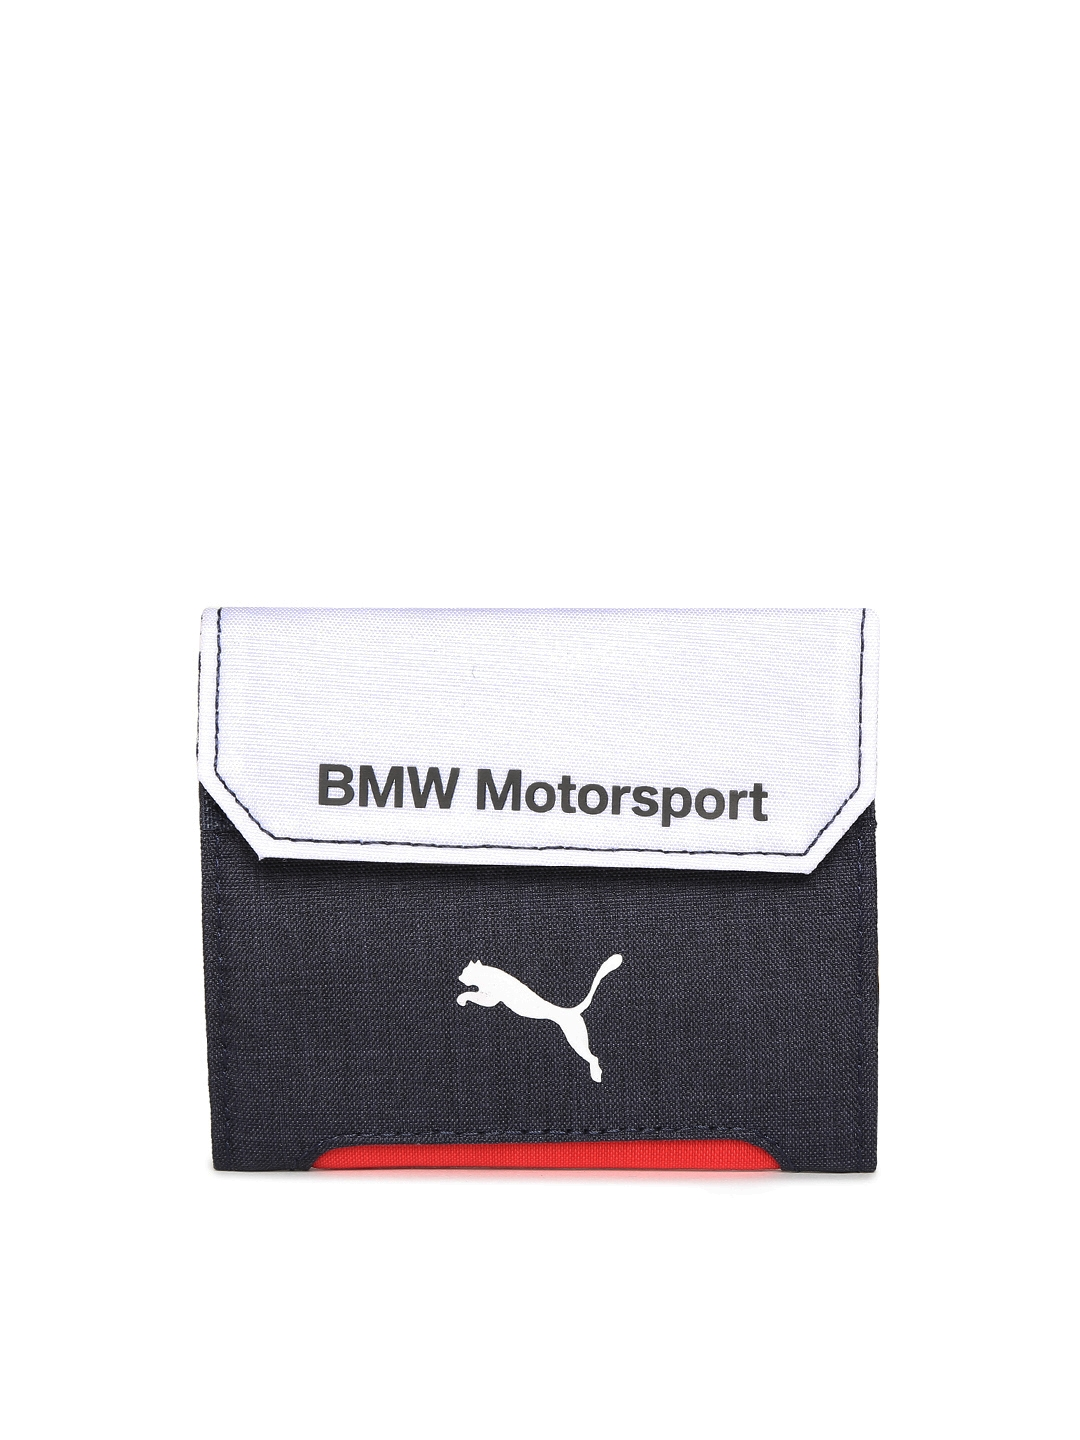 3c3e923996 Buy Puma Unisex Navy Blue   White BMW Motorsport Two Fold Wallet - Wallets  for Unisex 2088636